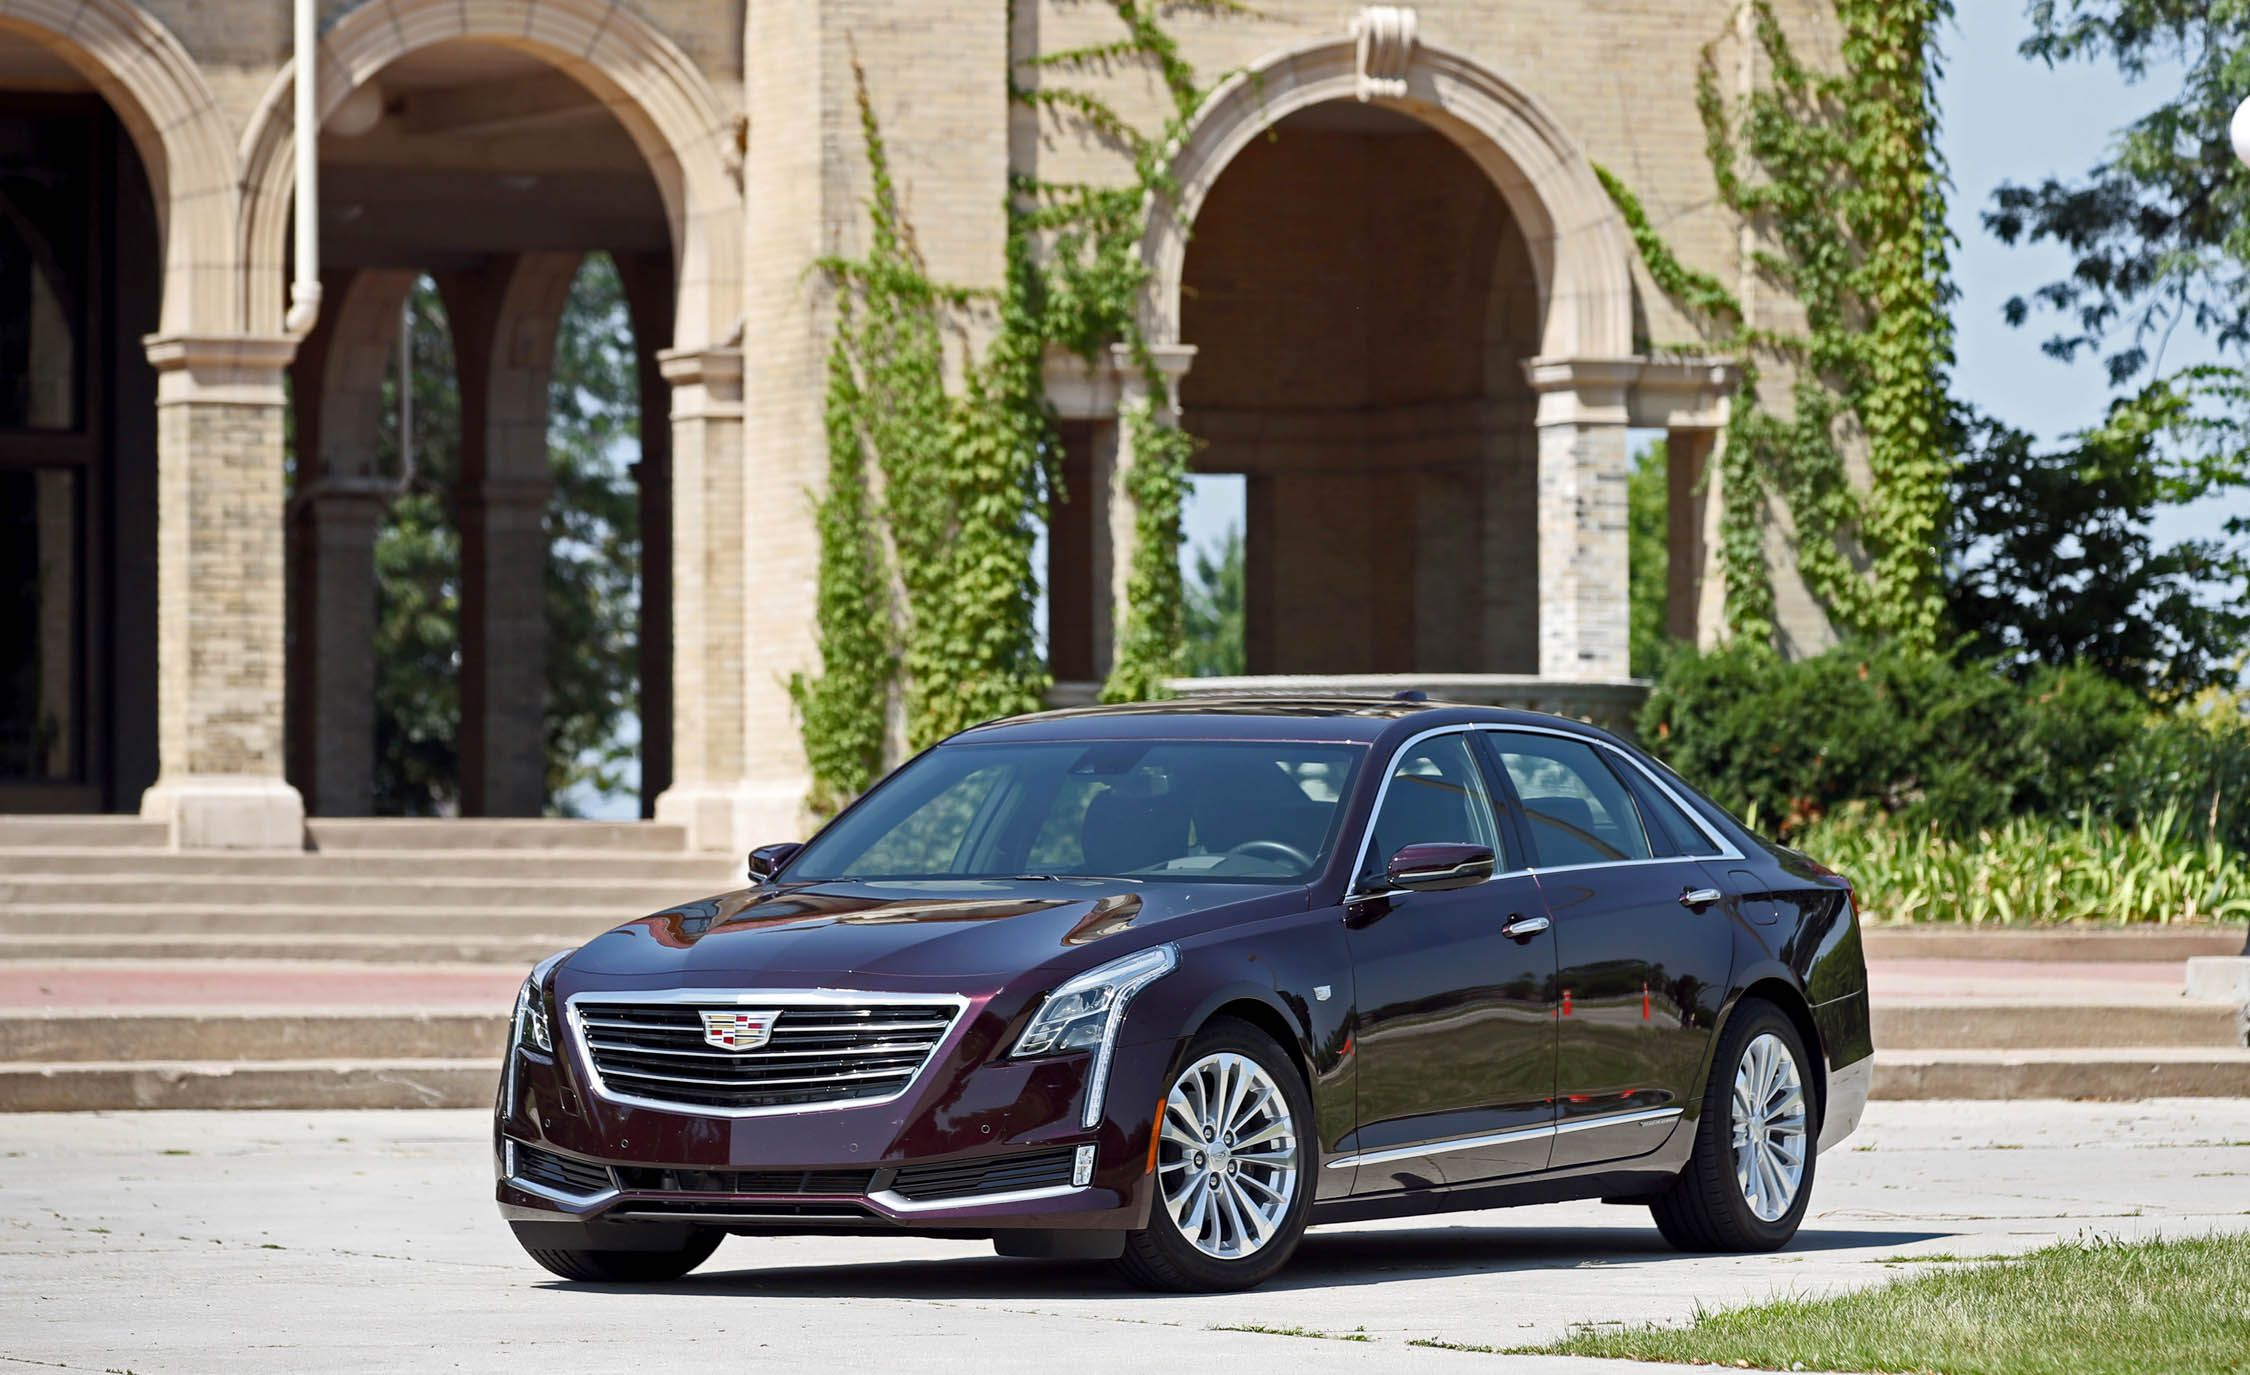 Cadillac Kills Off The Ct6 Plug In Hybrid Its Only Electrified Vehicle